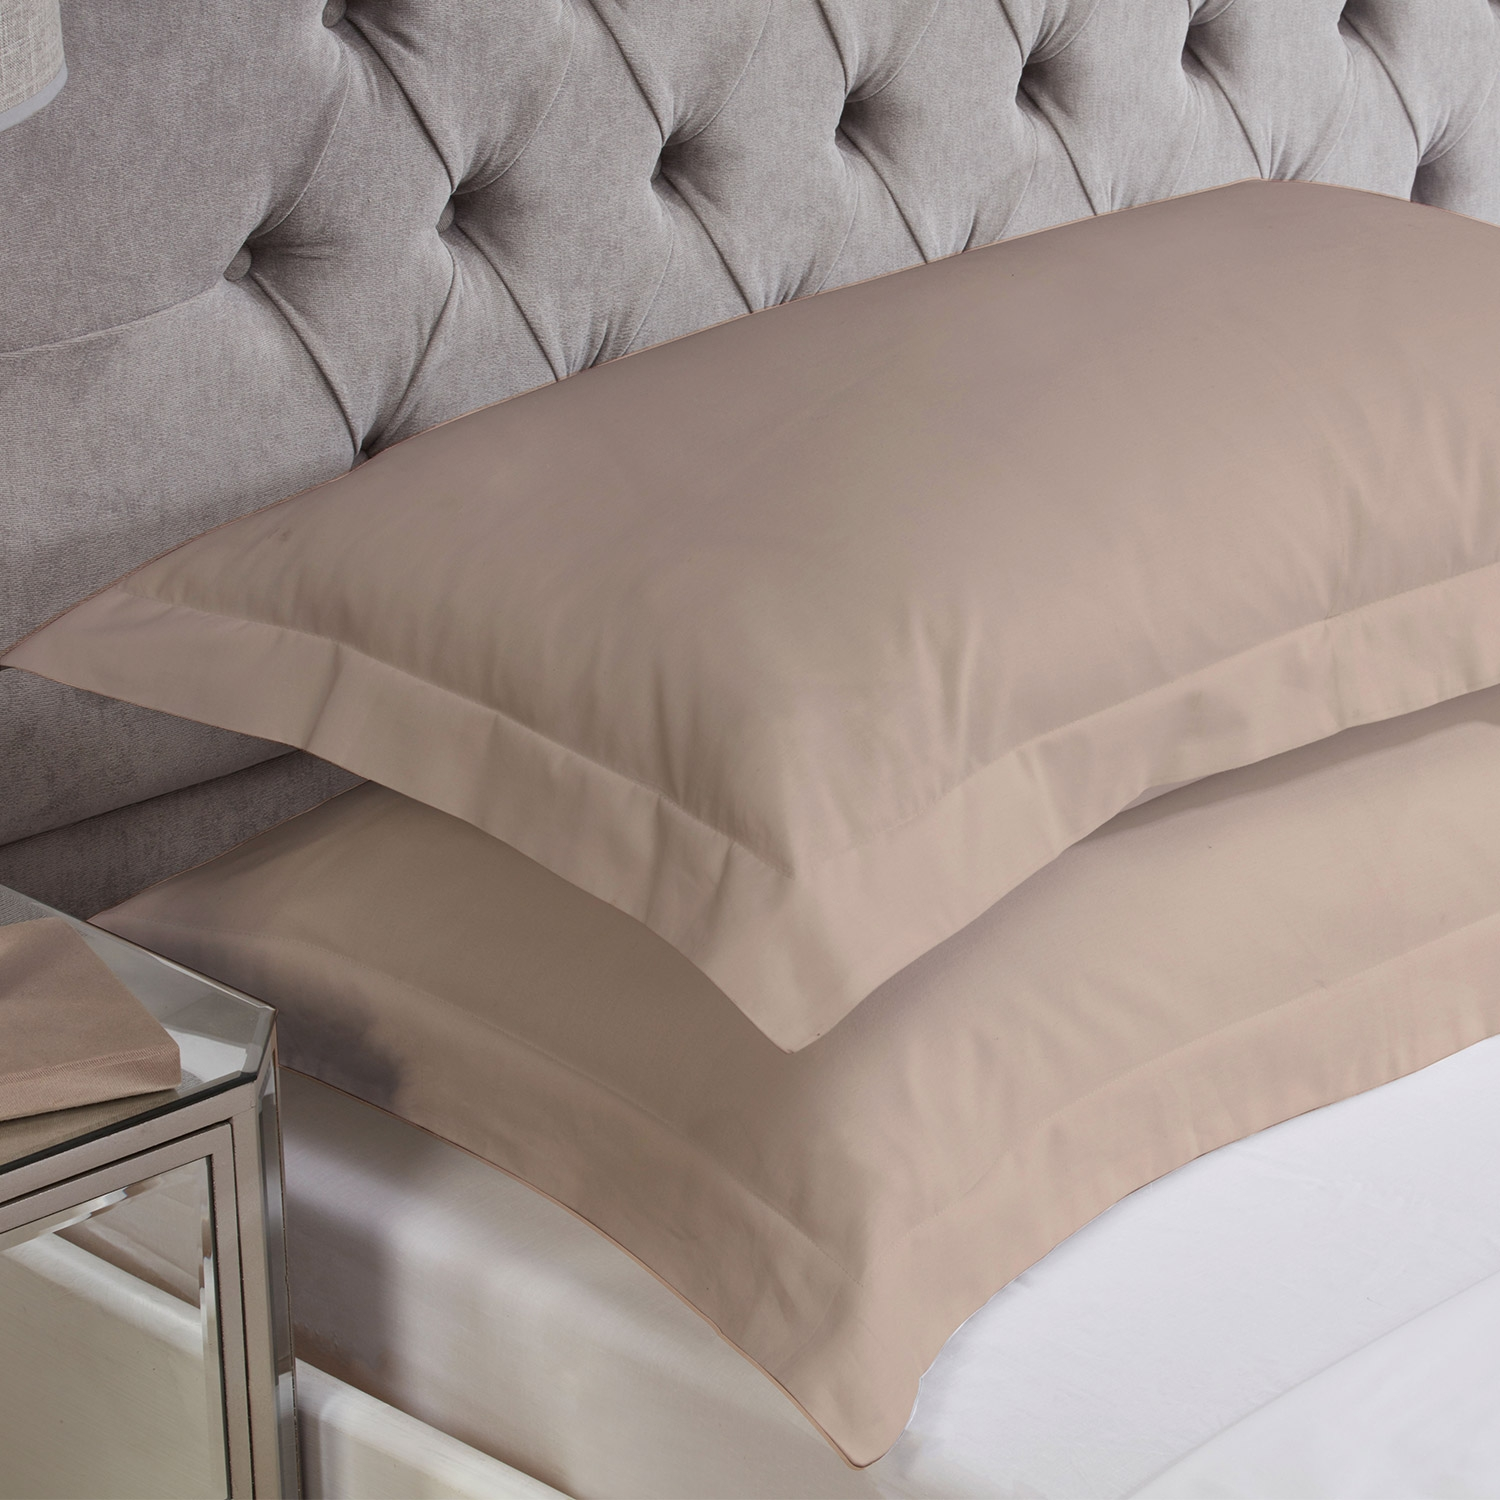 Blush Cotton Rich Percale Easy Care Oxford Pillowcases (Pair)